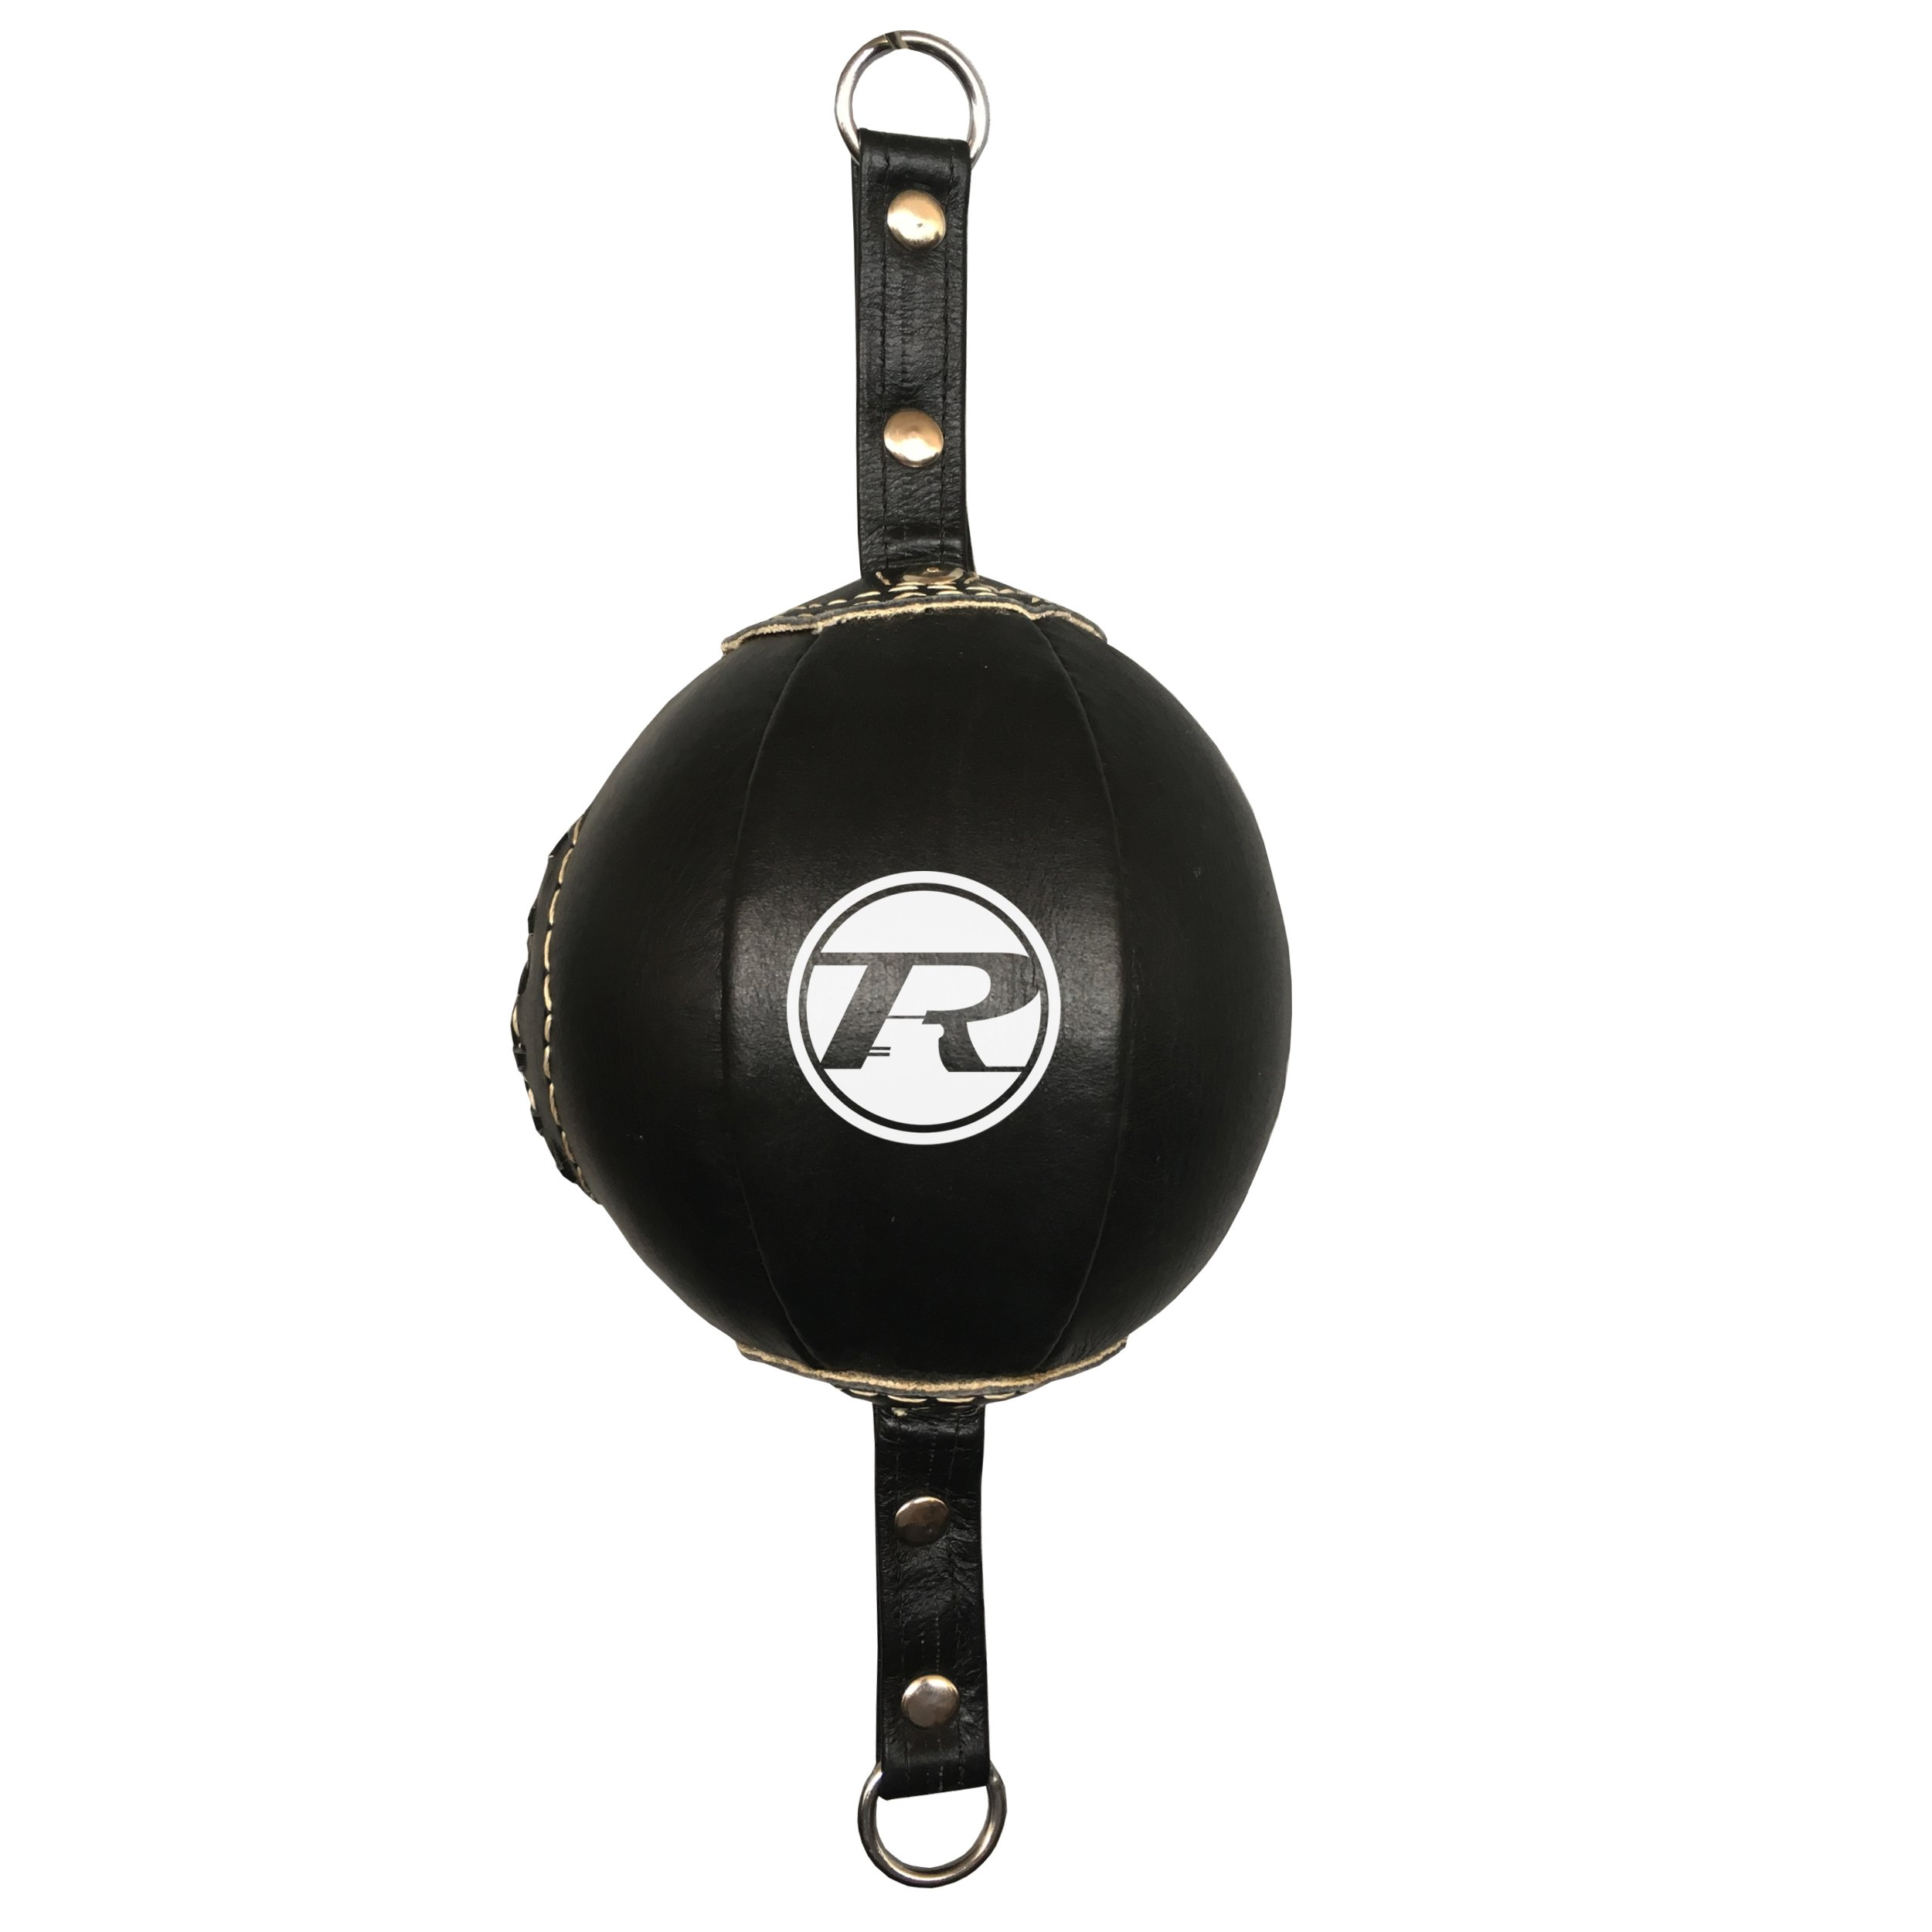 RINGSIDE SYNTHETIC LEATHER REACTION BALL BLACK